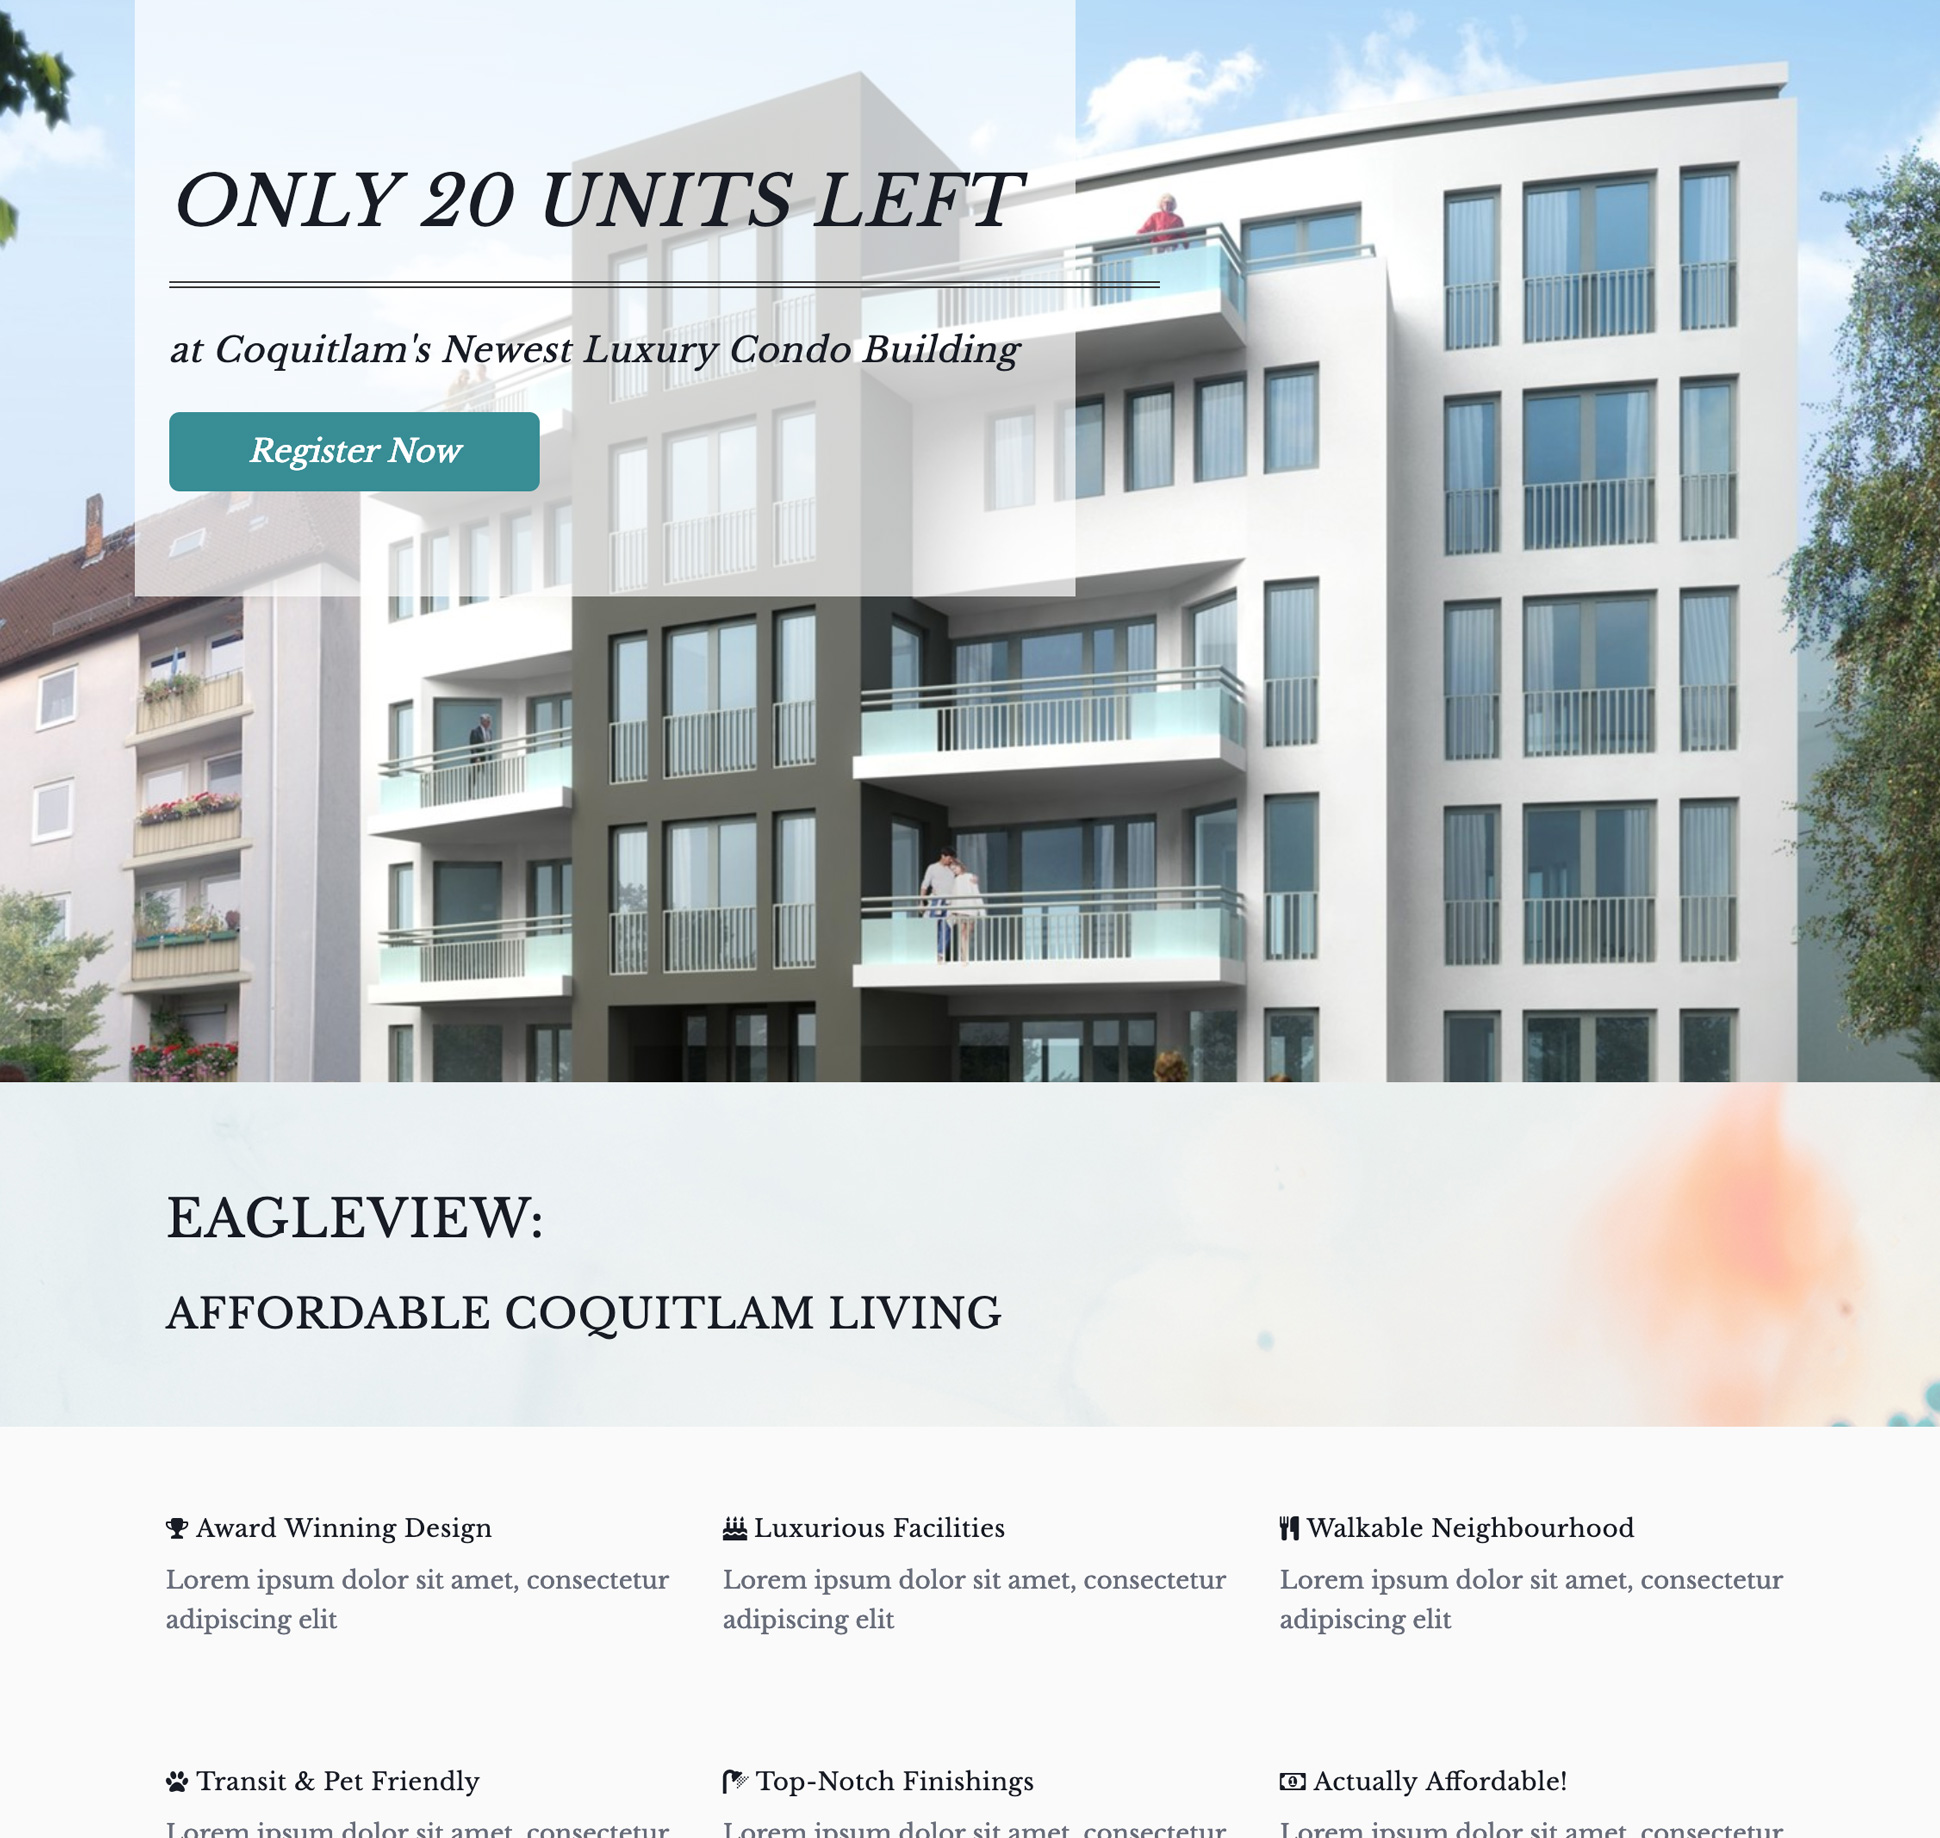 Example of a real estate landing page for a development in Coquitlam, BC